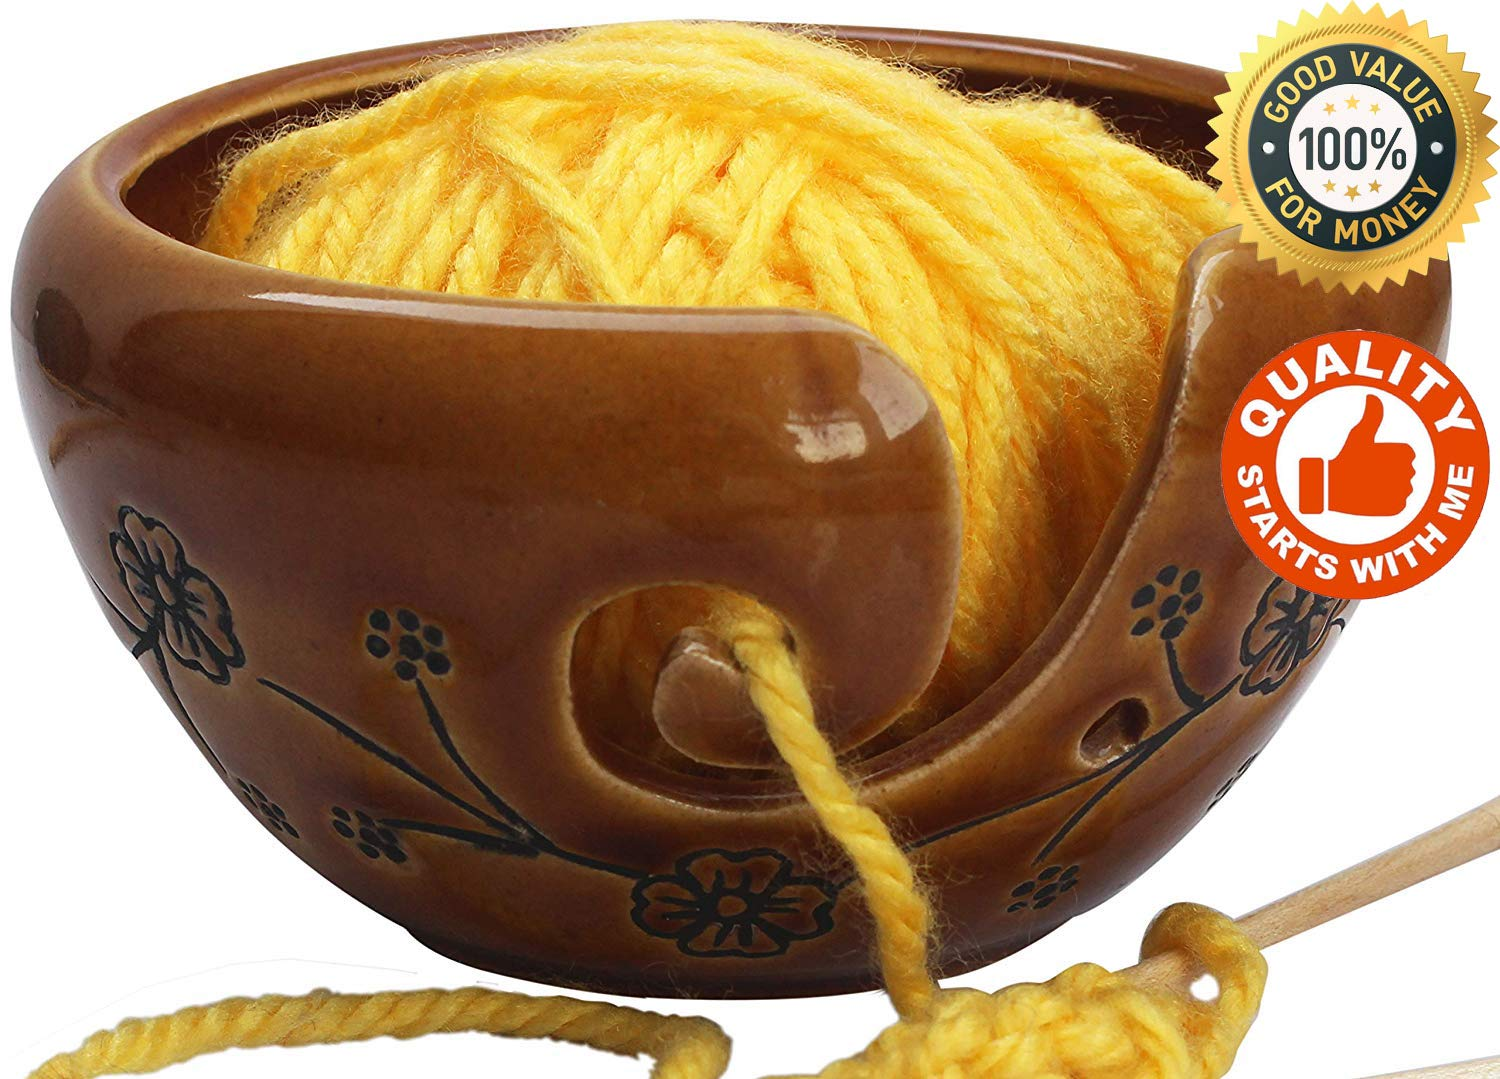 abhandicrafts - Deals of The Day - Ceramic Brown Yarn Bowl for Knitting, Crochet for Moms - Beautiful Gift on All Occasions. A for Moms and Grandmothers 6.5X4 Inch